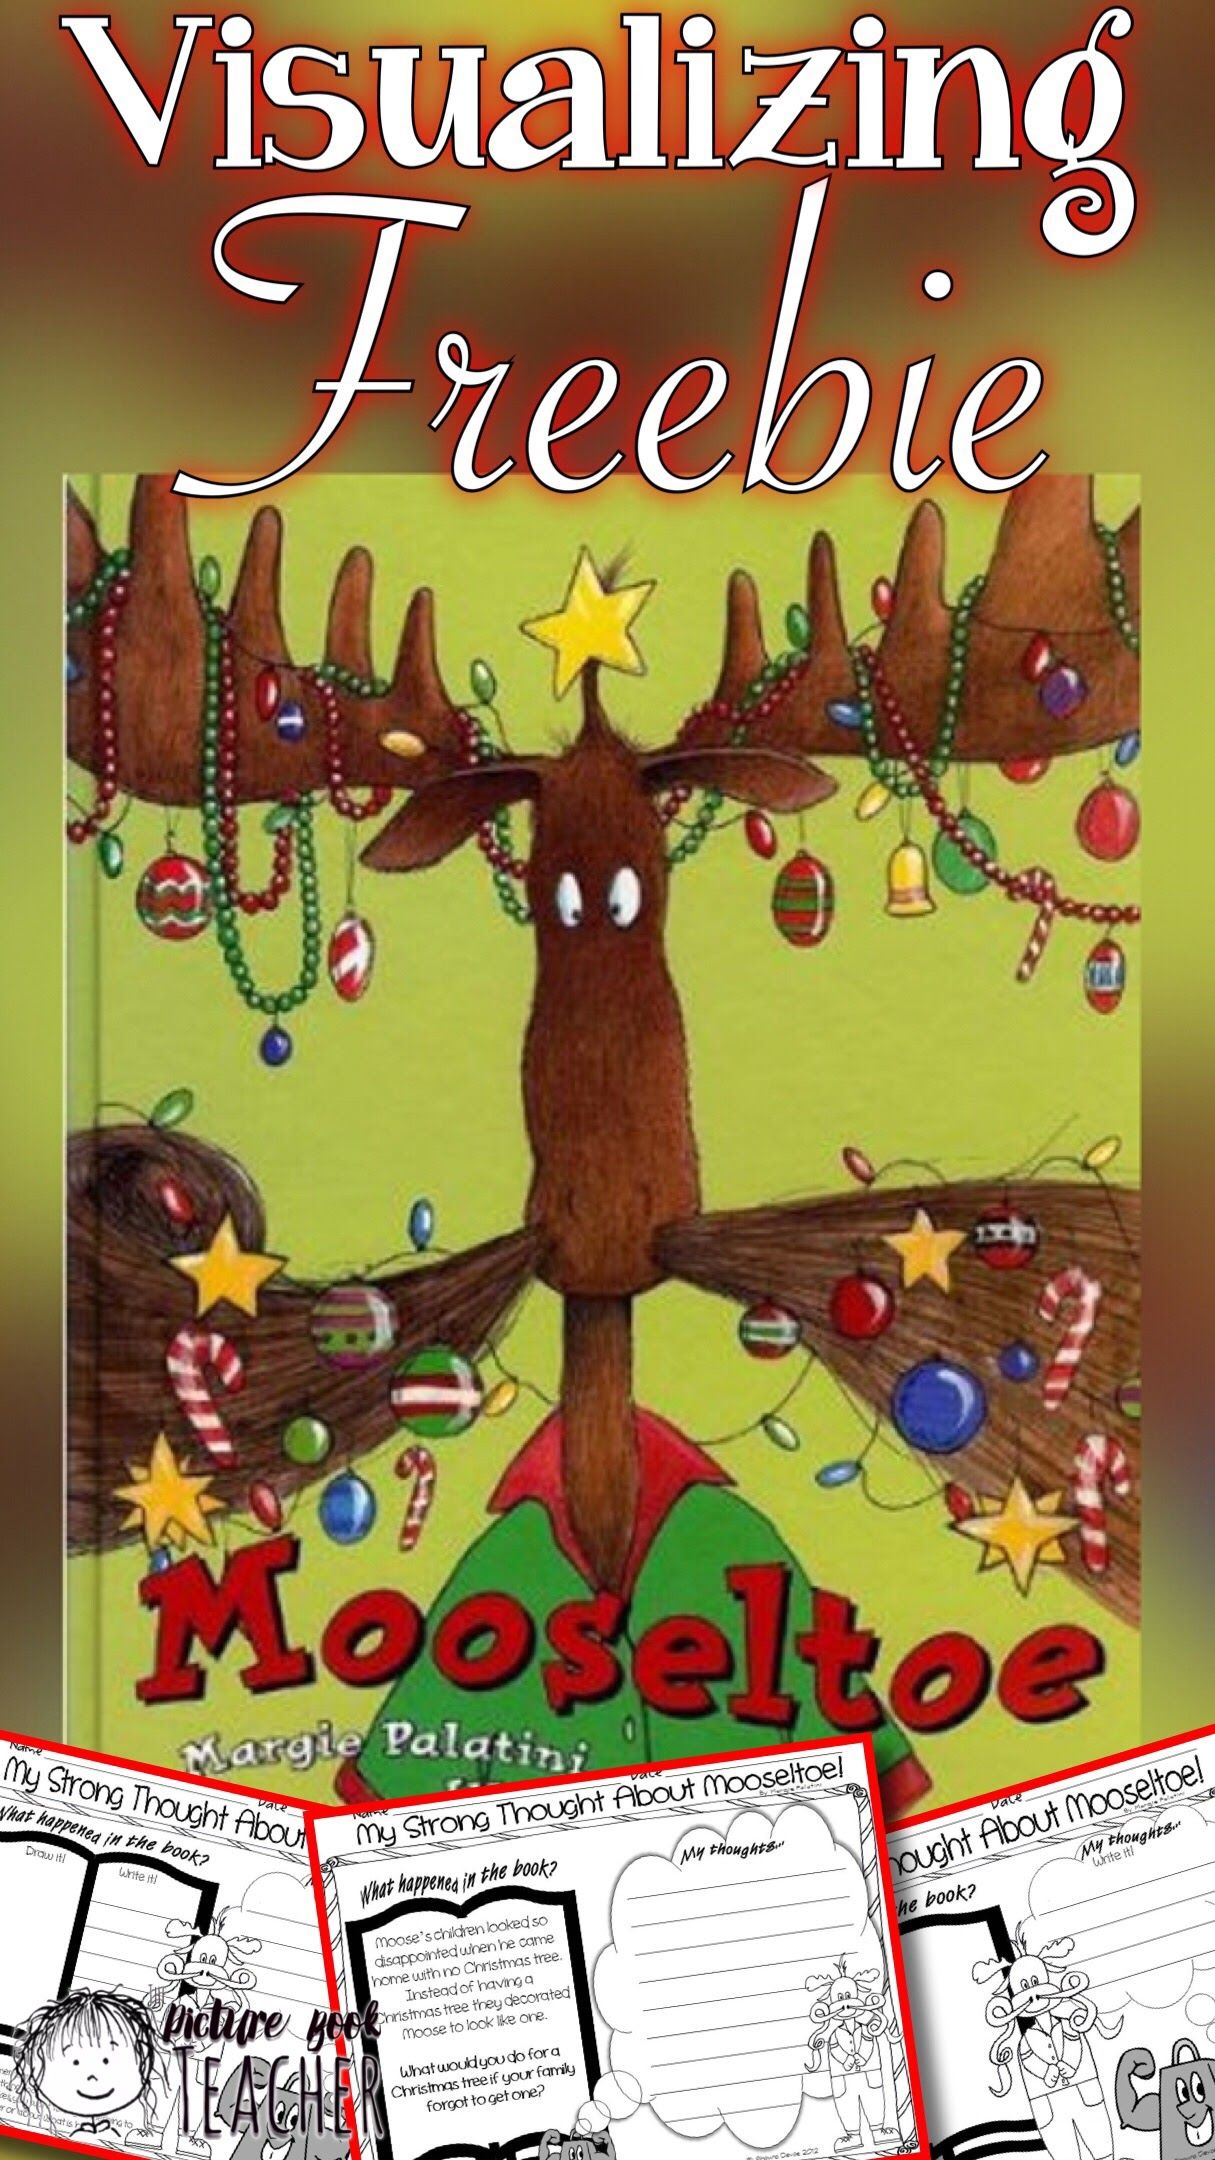 Have Your Students Practice Visualizing With This Freebie After Reading Mooseltoe